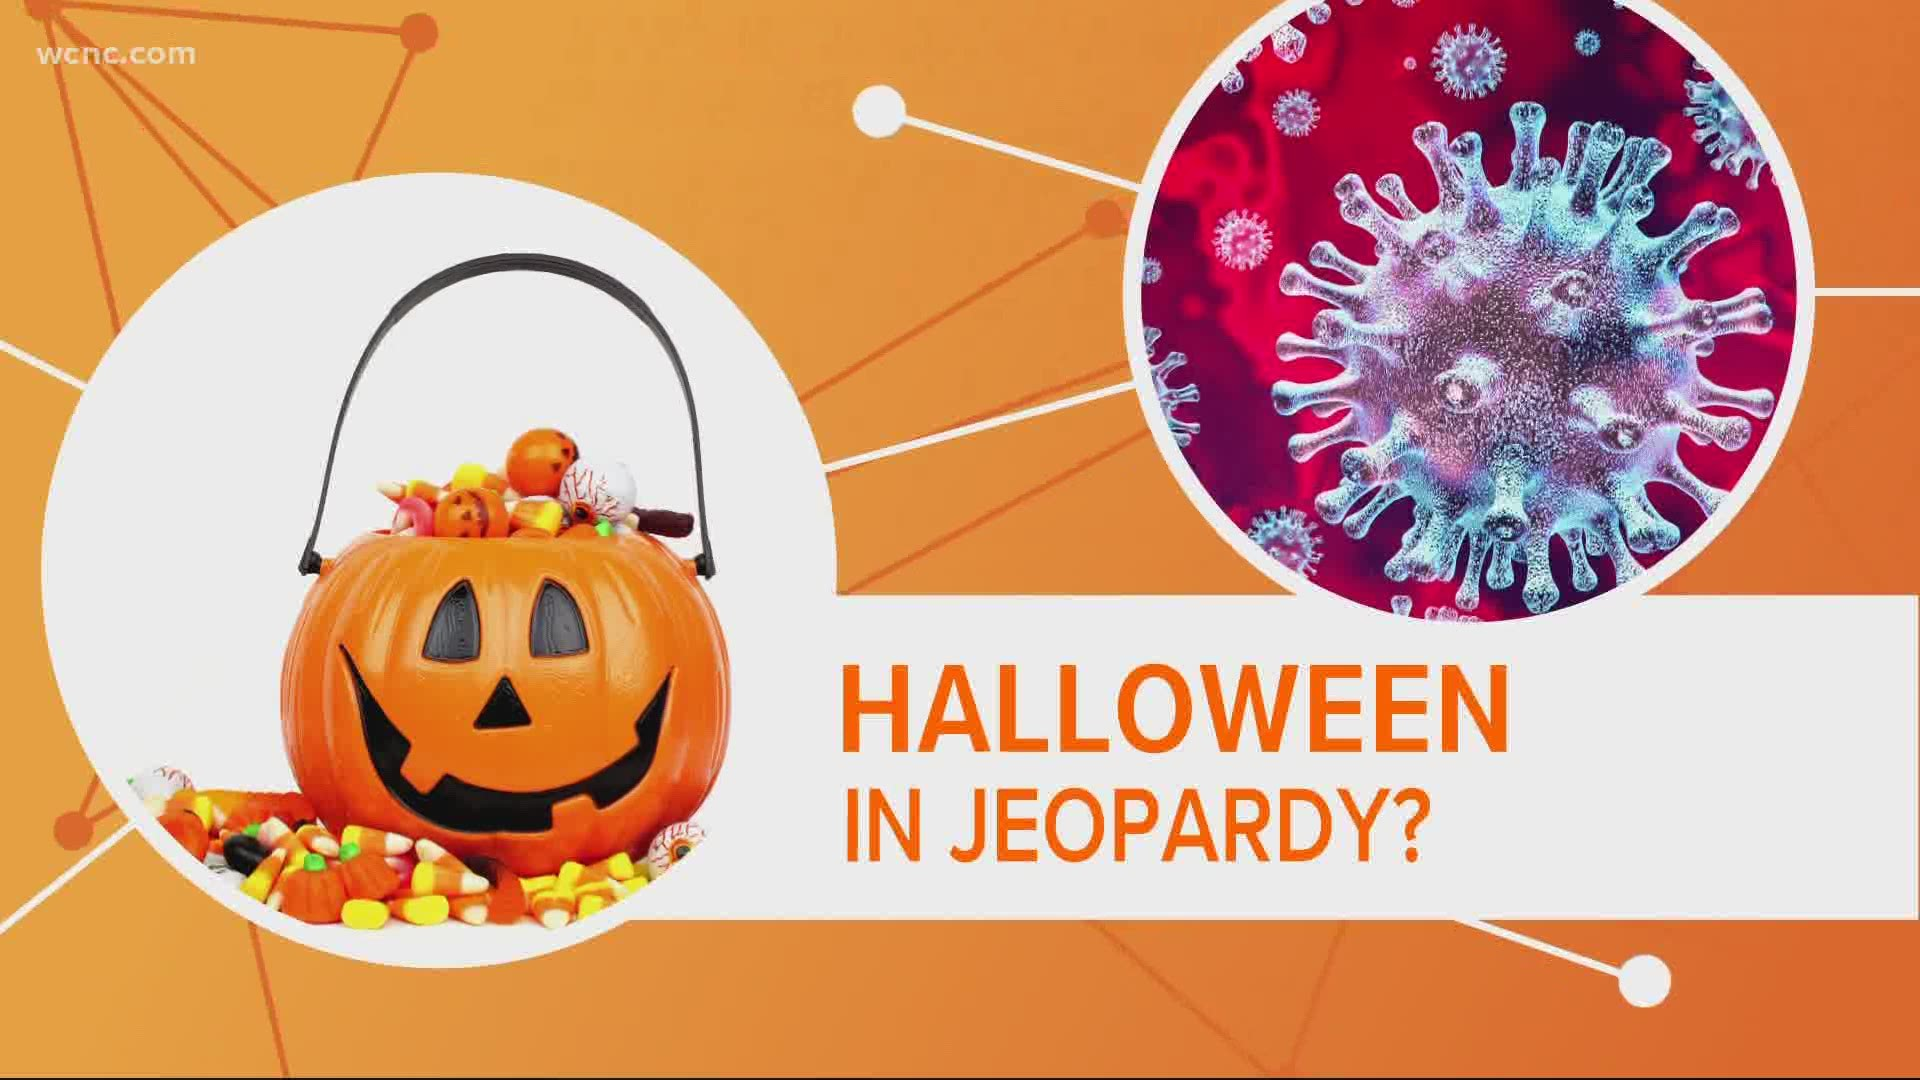 Halloween 2020 Minneapolis Will Halloween be impacted by the coronavirus pandemic? | kare11.com